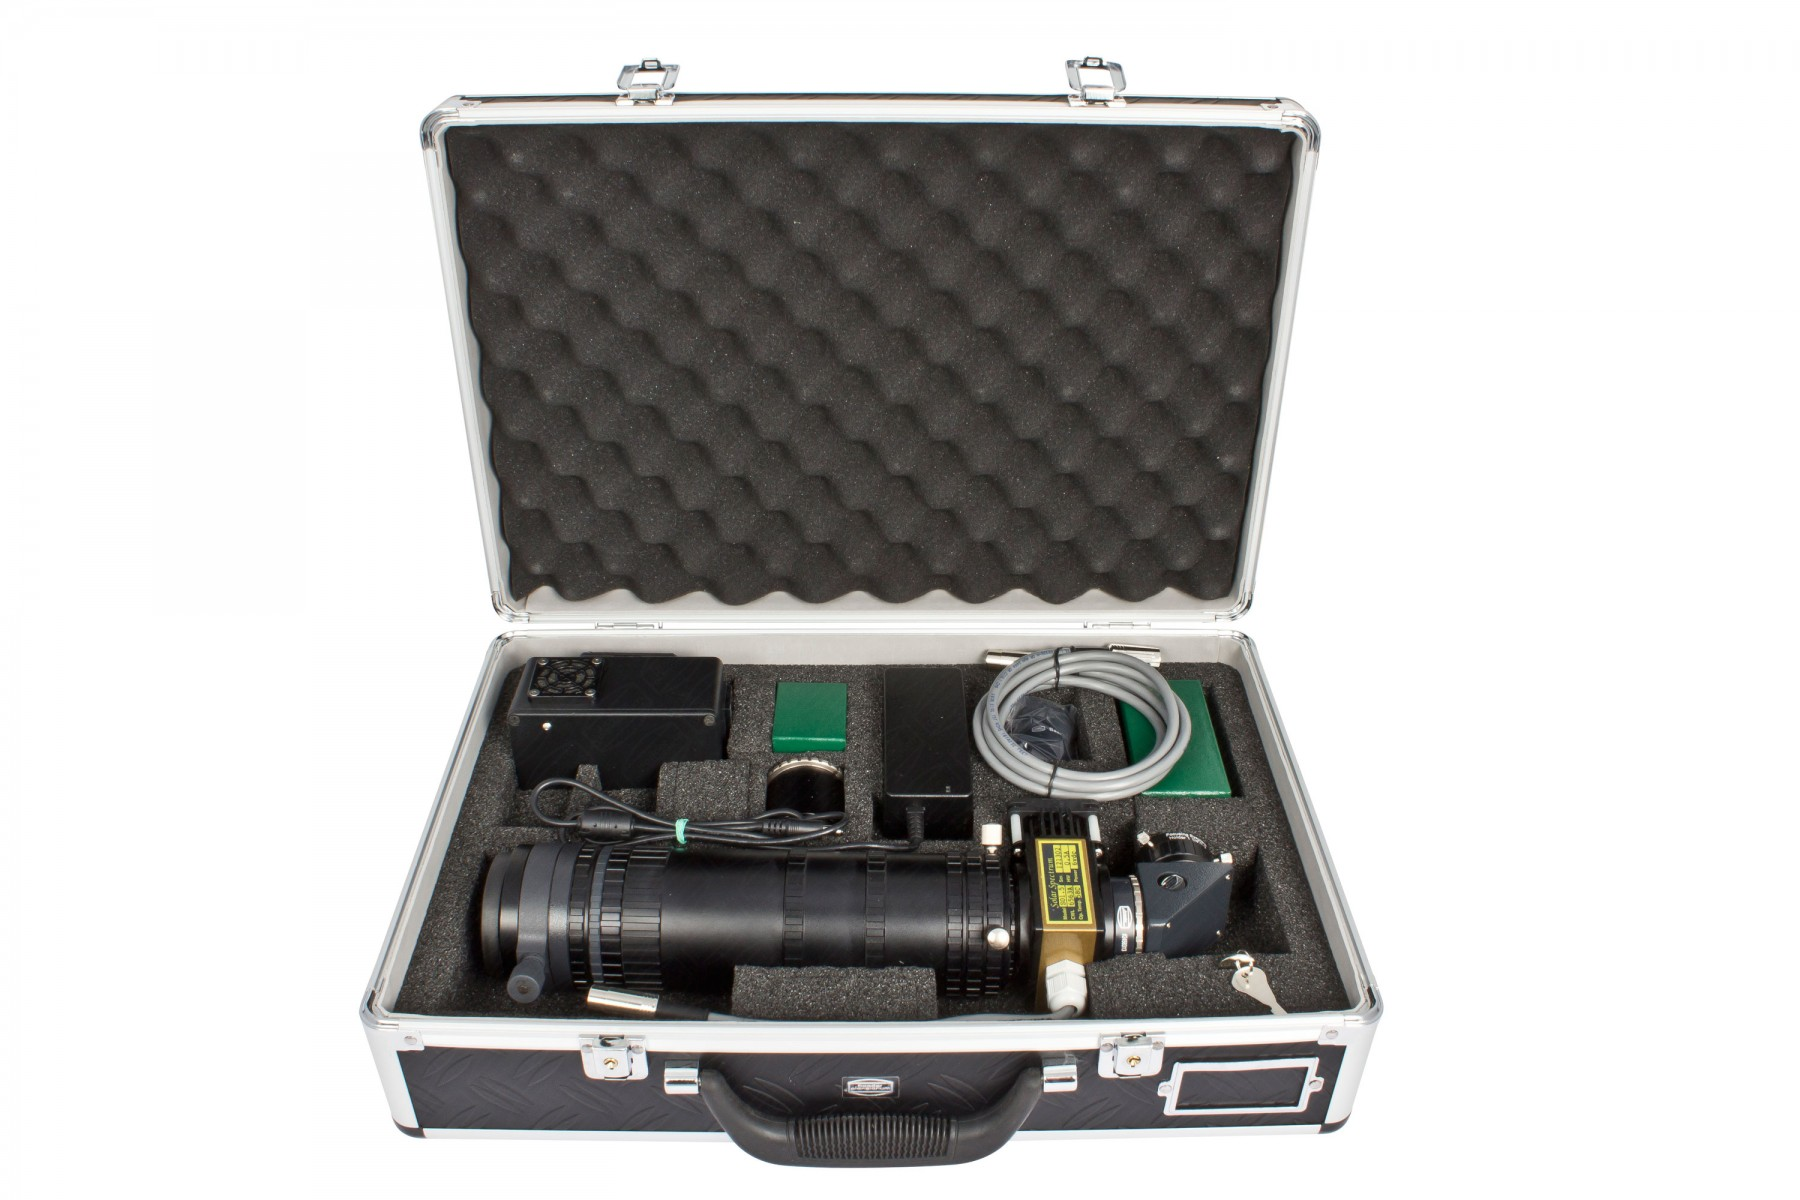 Example of included items for a SolarSpectrum Filter (shown #2459219: SolarSpectrum Solar Observer 1.5 - 0.50 Å). Case and accessories are optional available